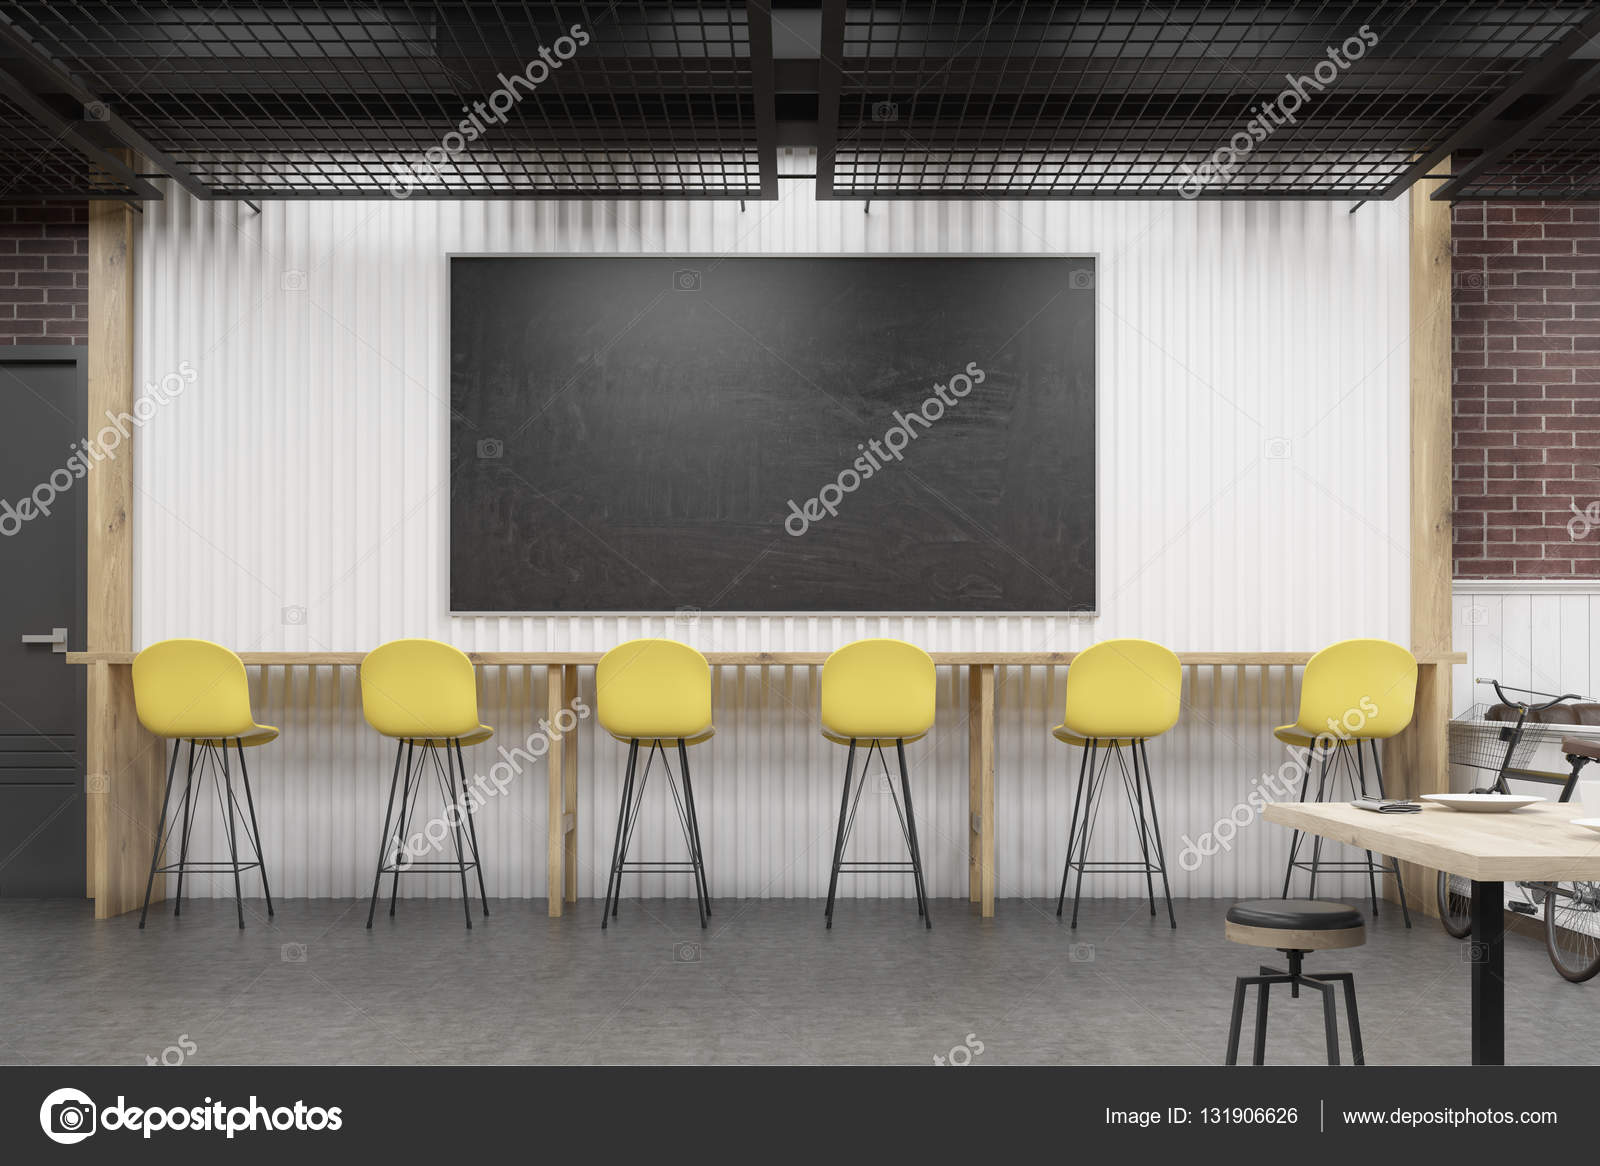 cafe interior with a chalkboard and a row of yellow chairs — stock